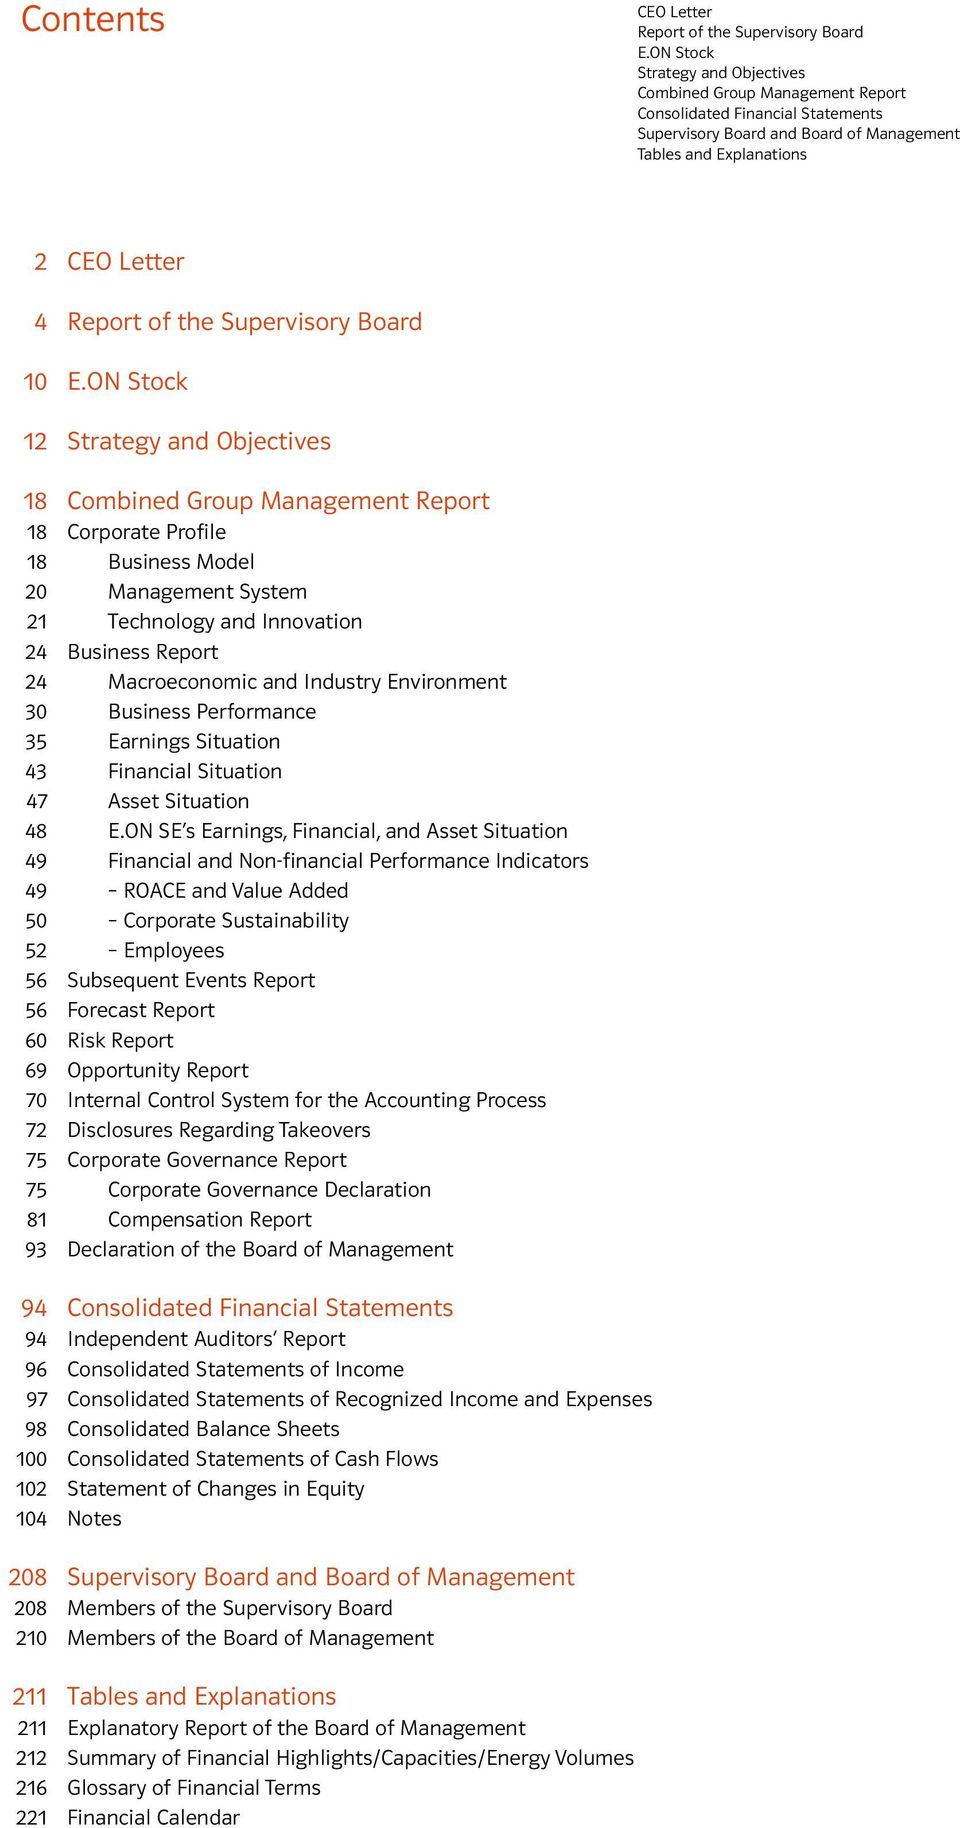 ON Stock 12 18 Combined Group Management Report 18 Corporate Profile 18 Business Model 20 Management System 21 Technology and Innovation 24 Business Report 24 Macroeconomic and Industry Environment